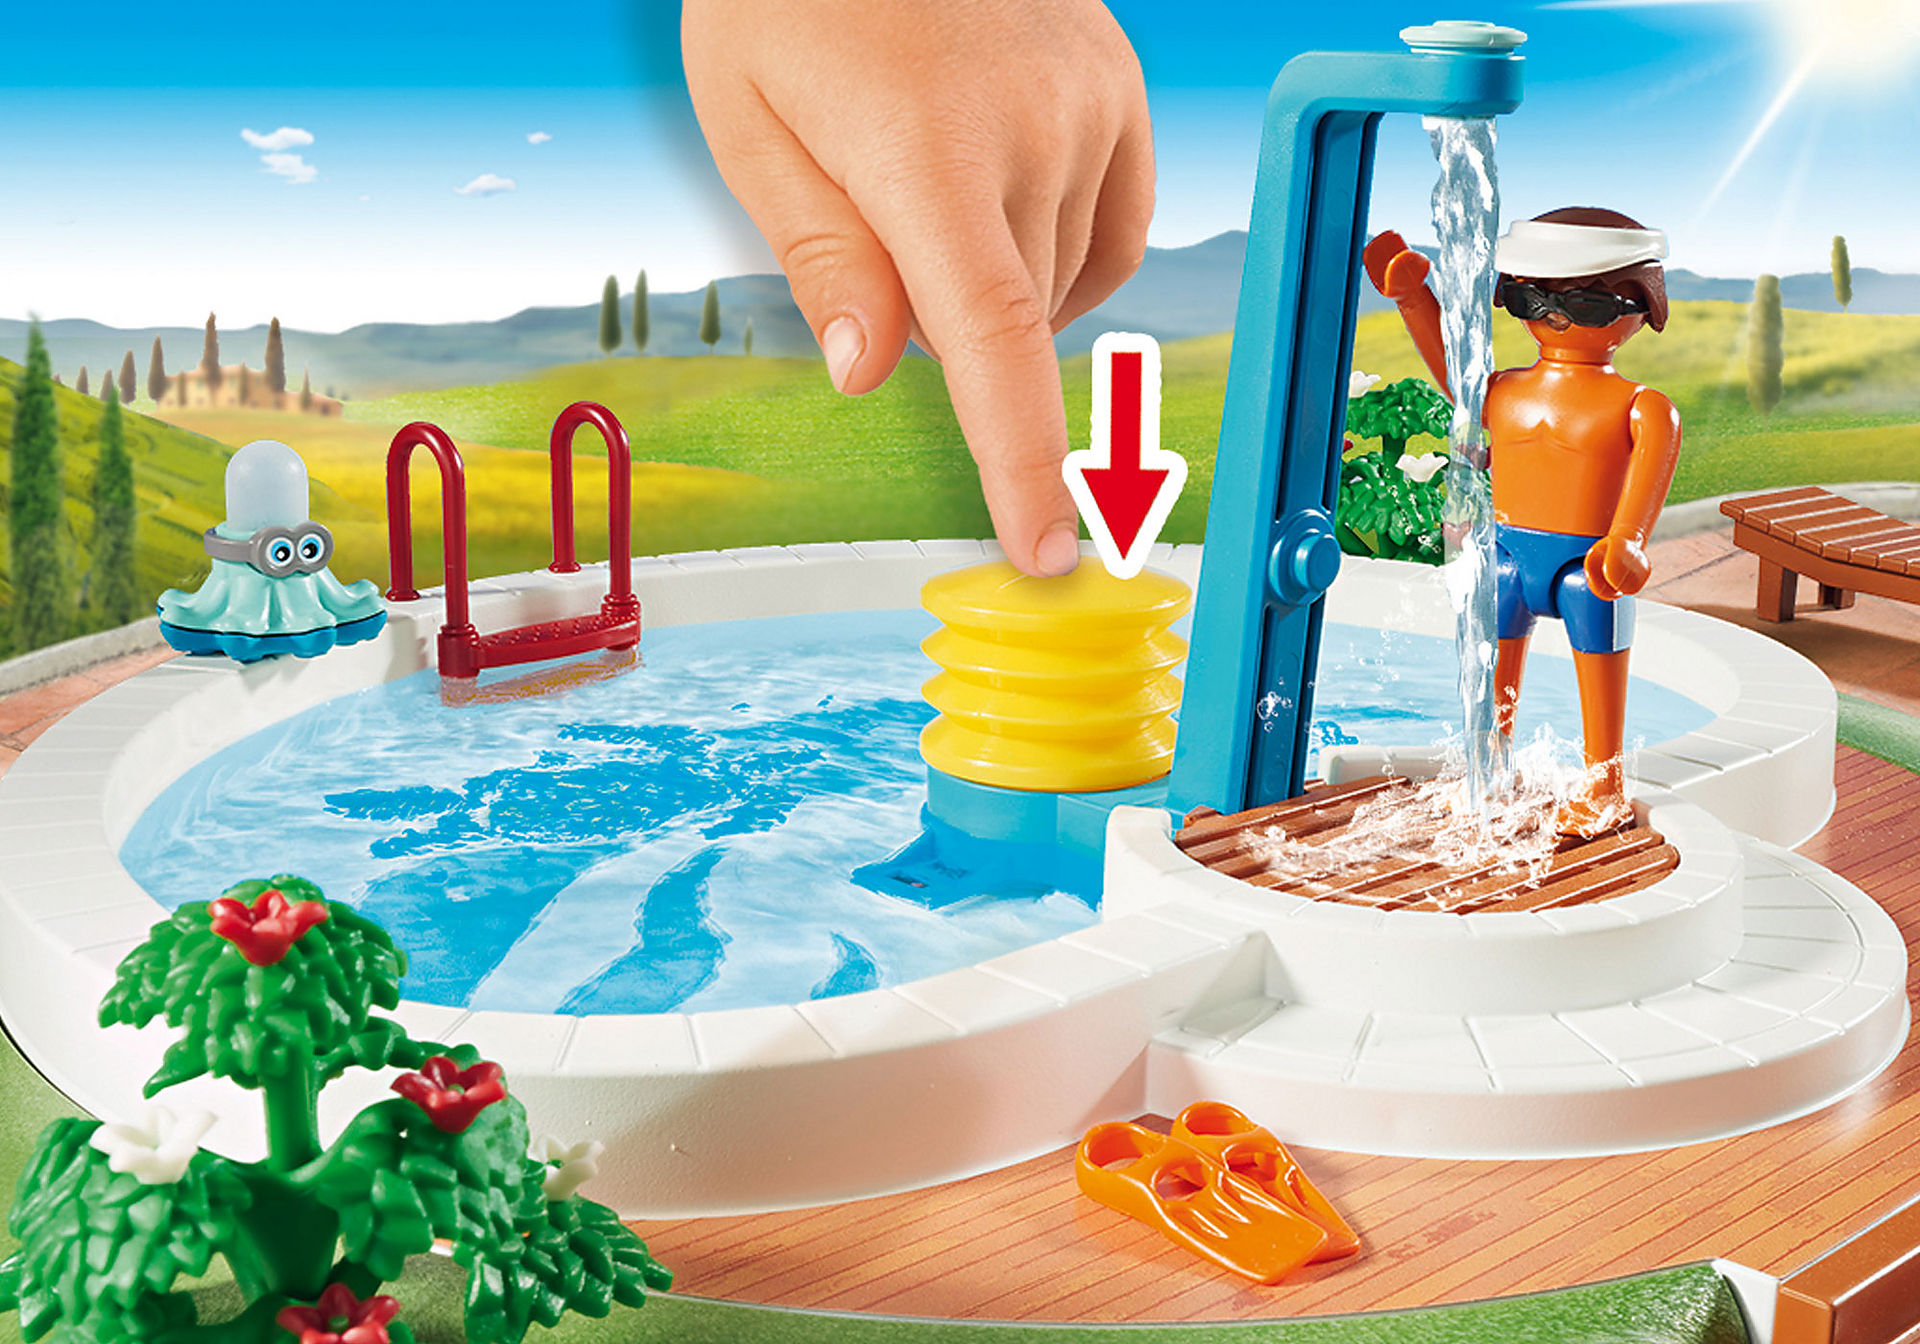 http://media.playmobil.com/i/playmobil/9422_product_extra1/Πισίνα με ντουζ